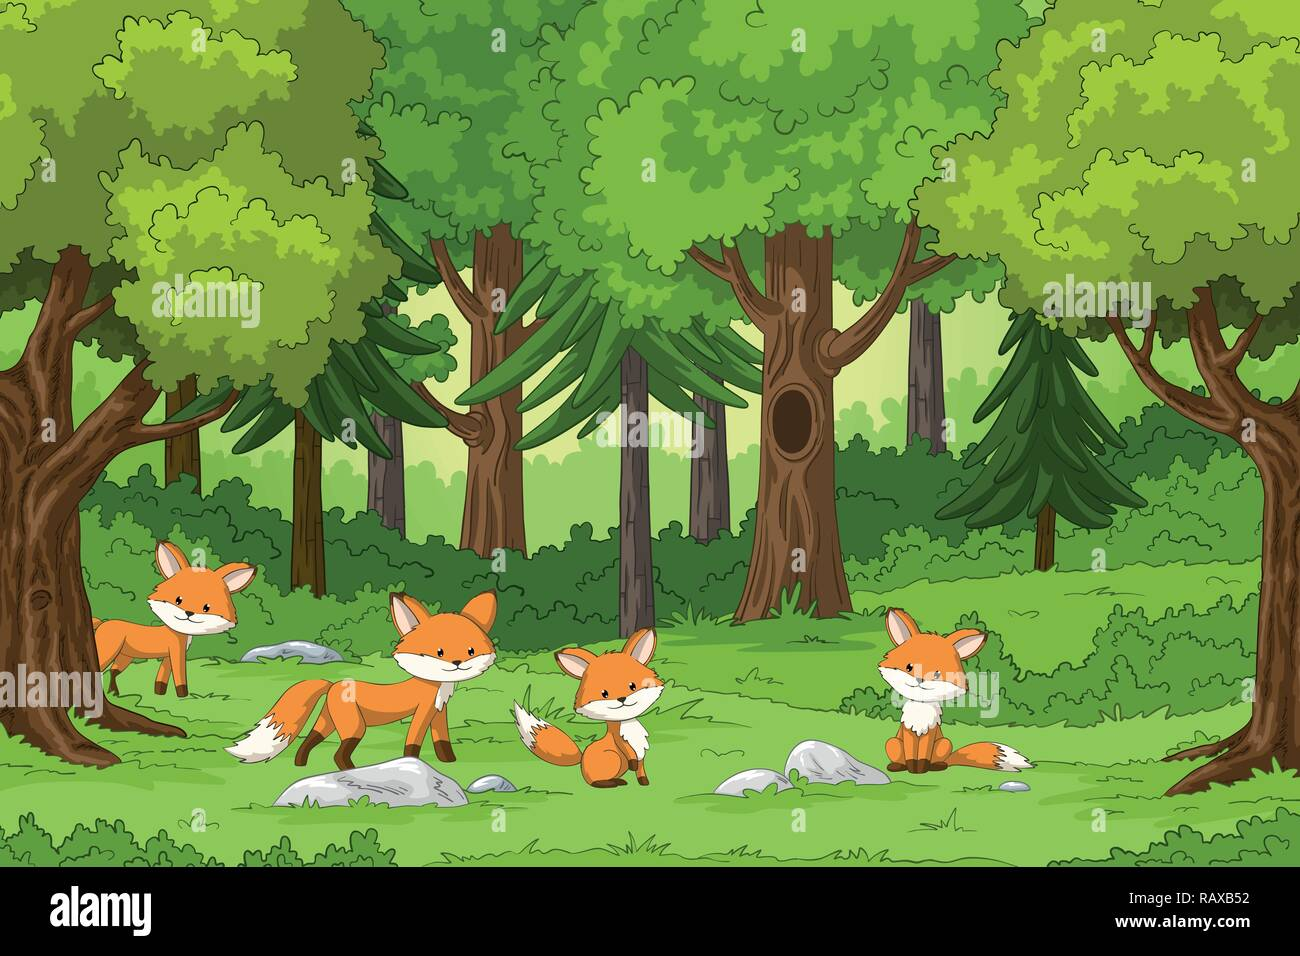 Cute foxes in the forest, hand draw illustration - Stock Vector